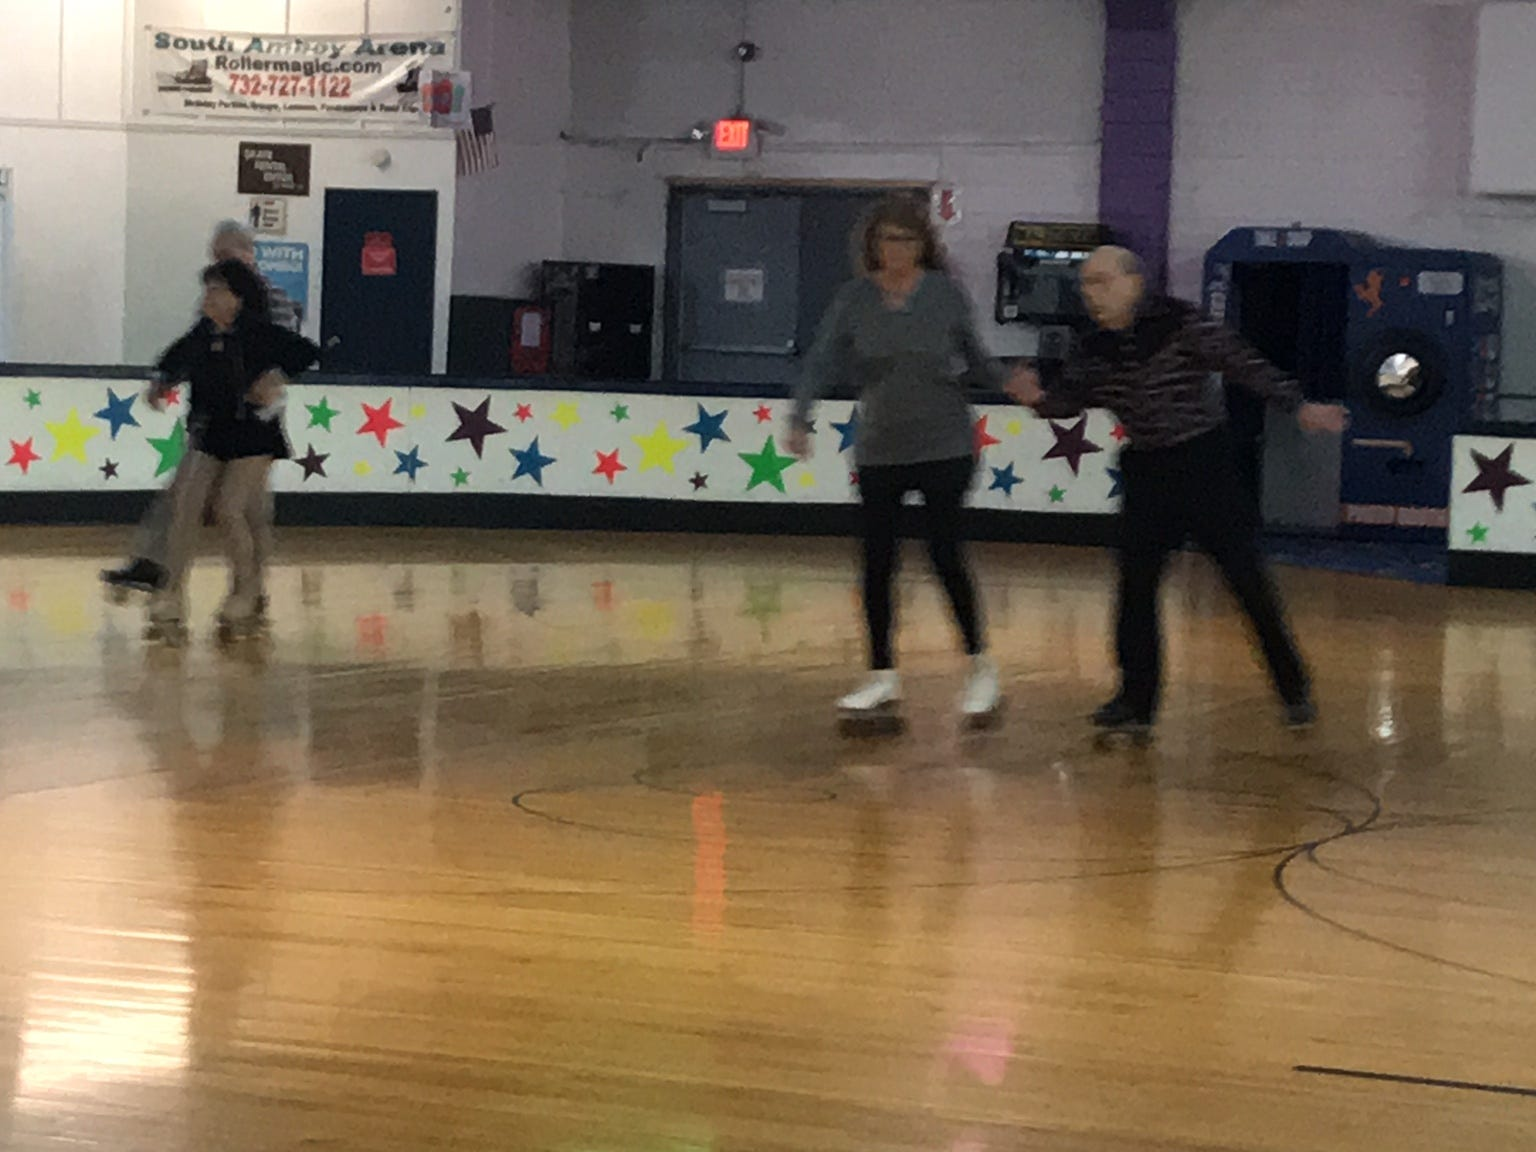 At least twice a week, more than 20 seniors regularly gather at South Amboy Arenaand take to the rink for a couple hours of roller skating. They range in age from 55 to 100.